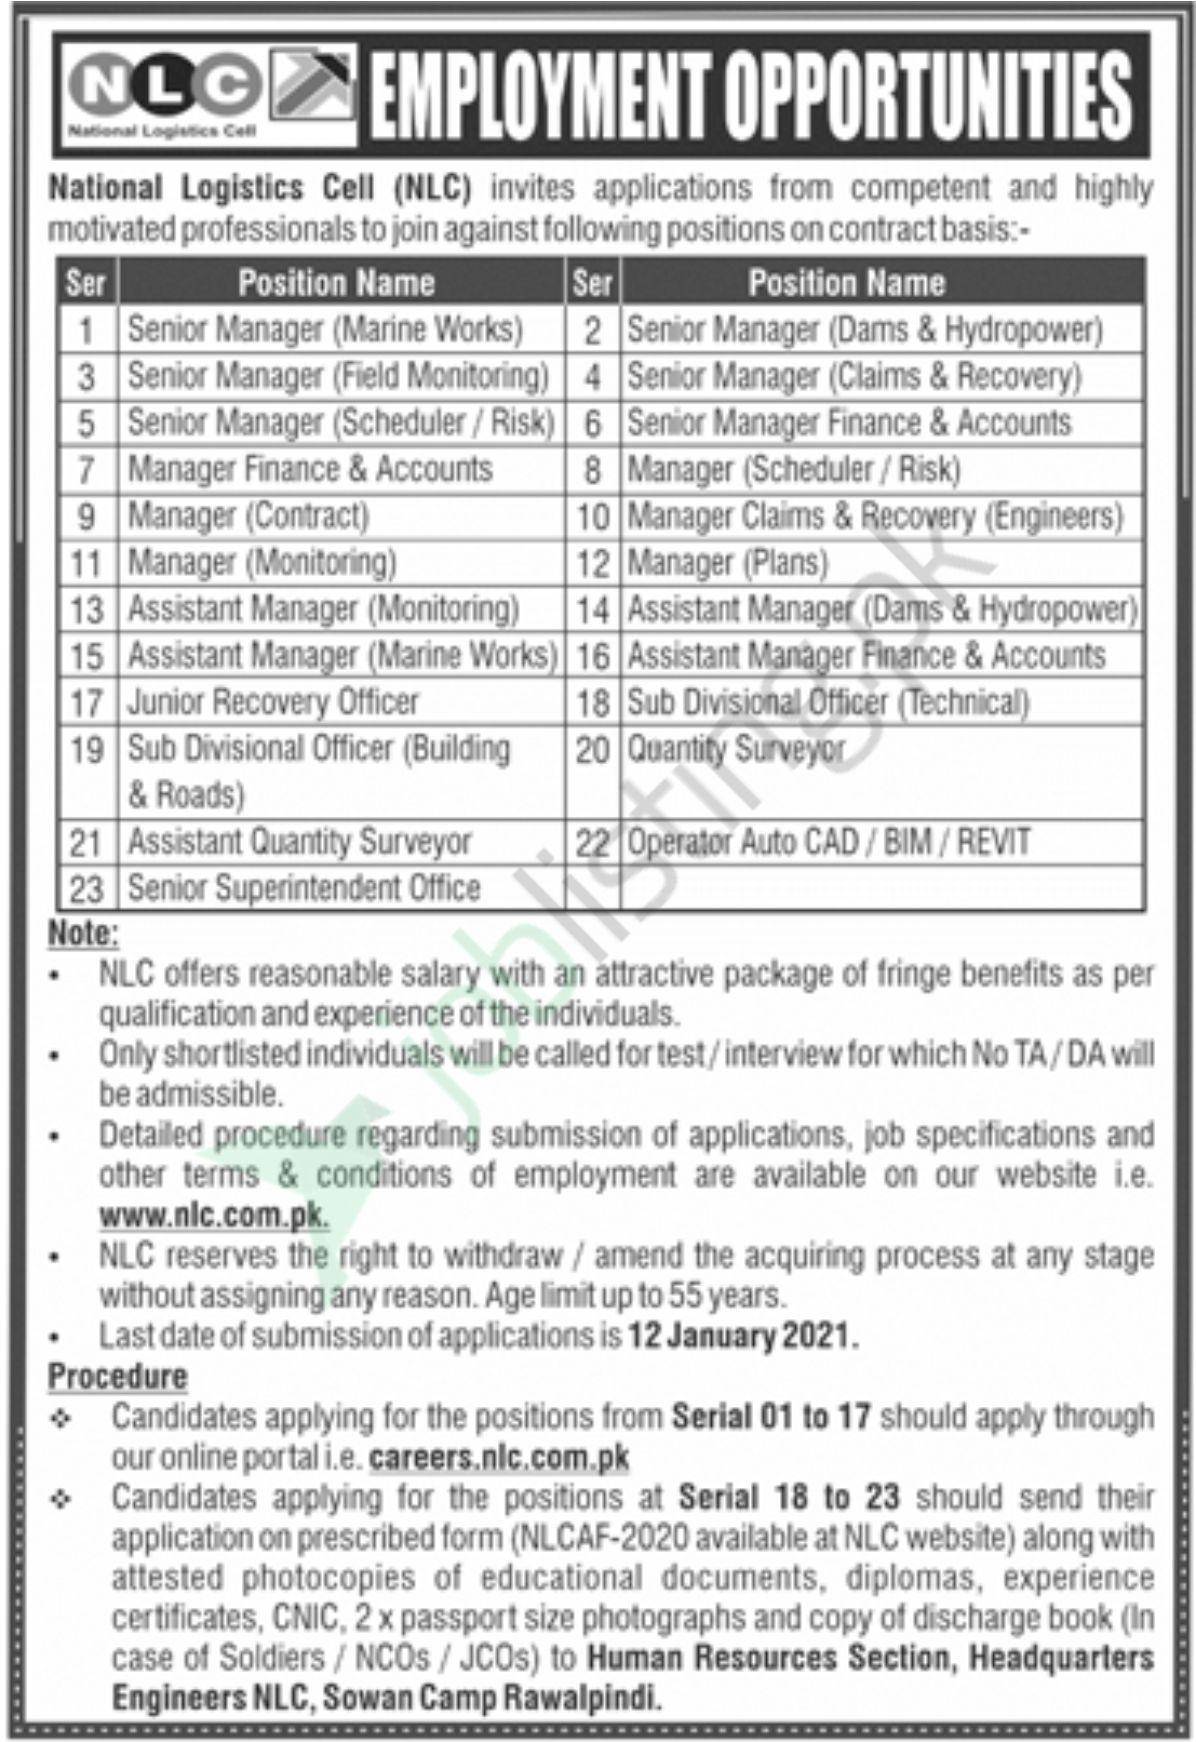 National Logistics Cell (NLC) Jobs 2020 for Assistant Managers